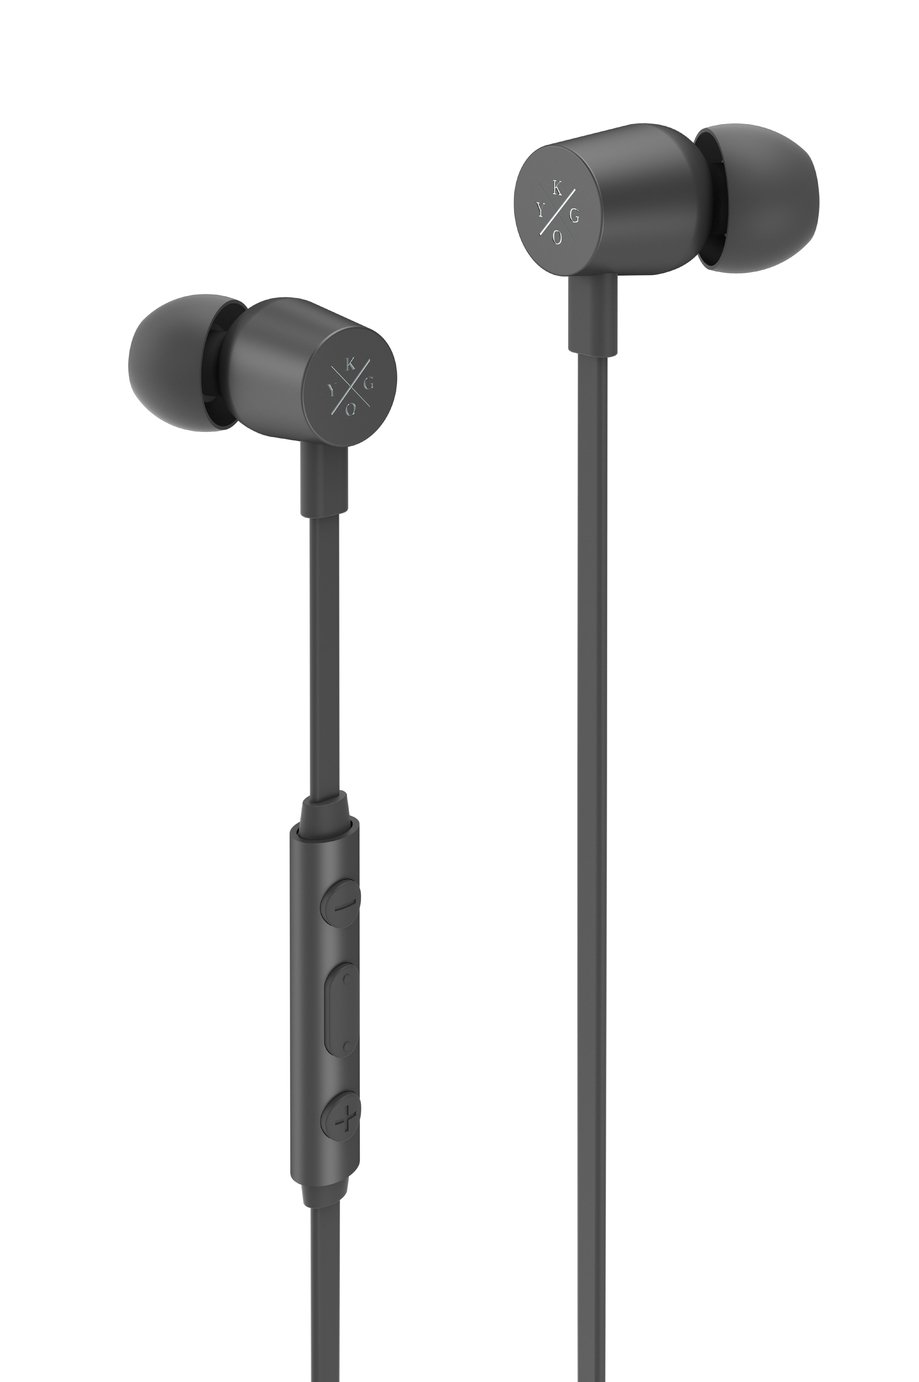 Kygo E2/400 In-Ear Wired Headphones - Black